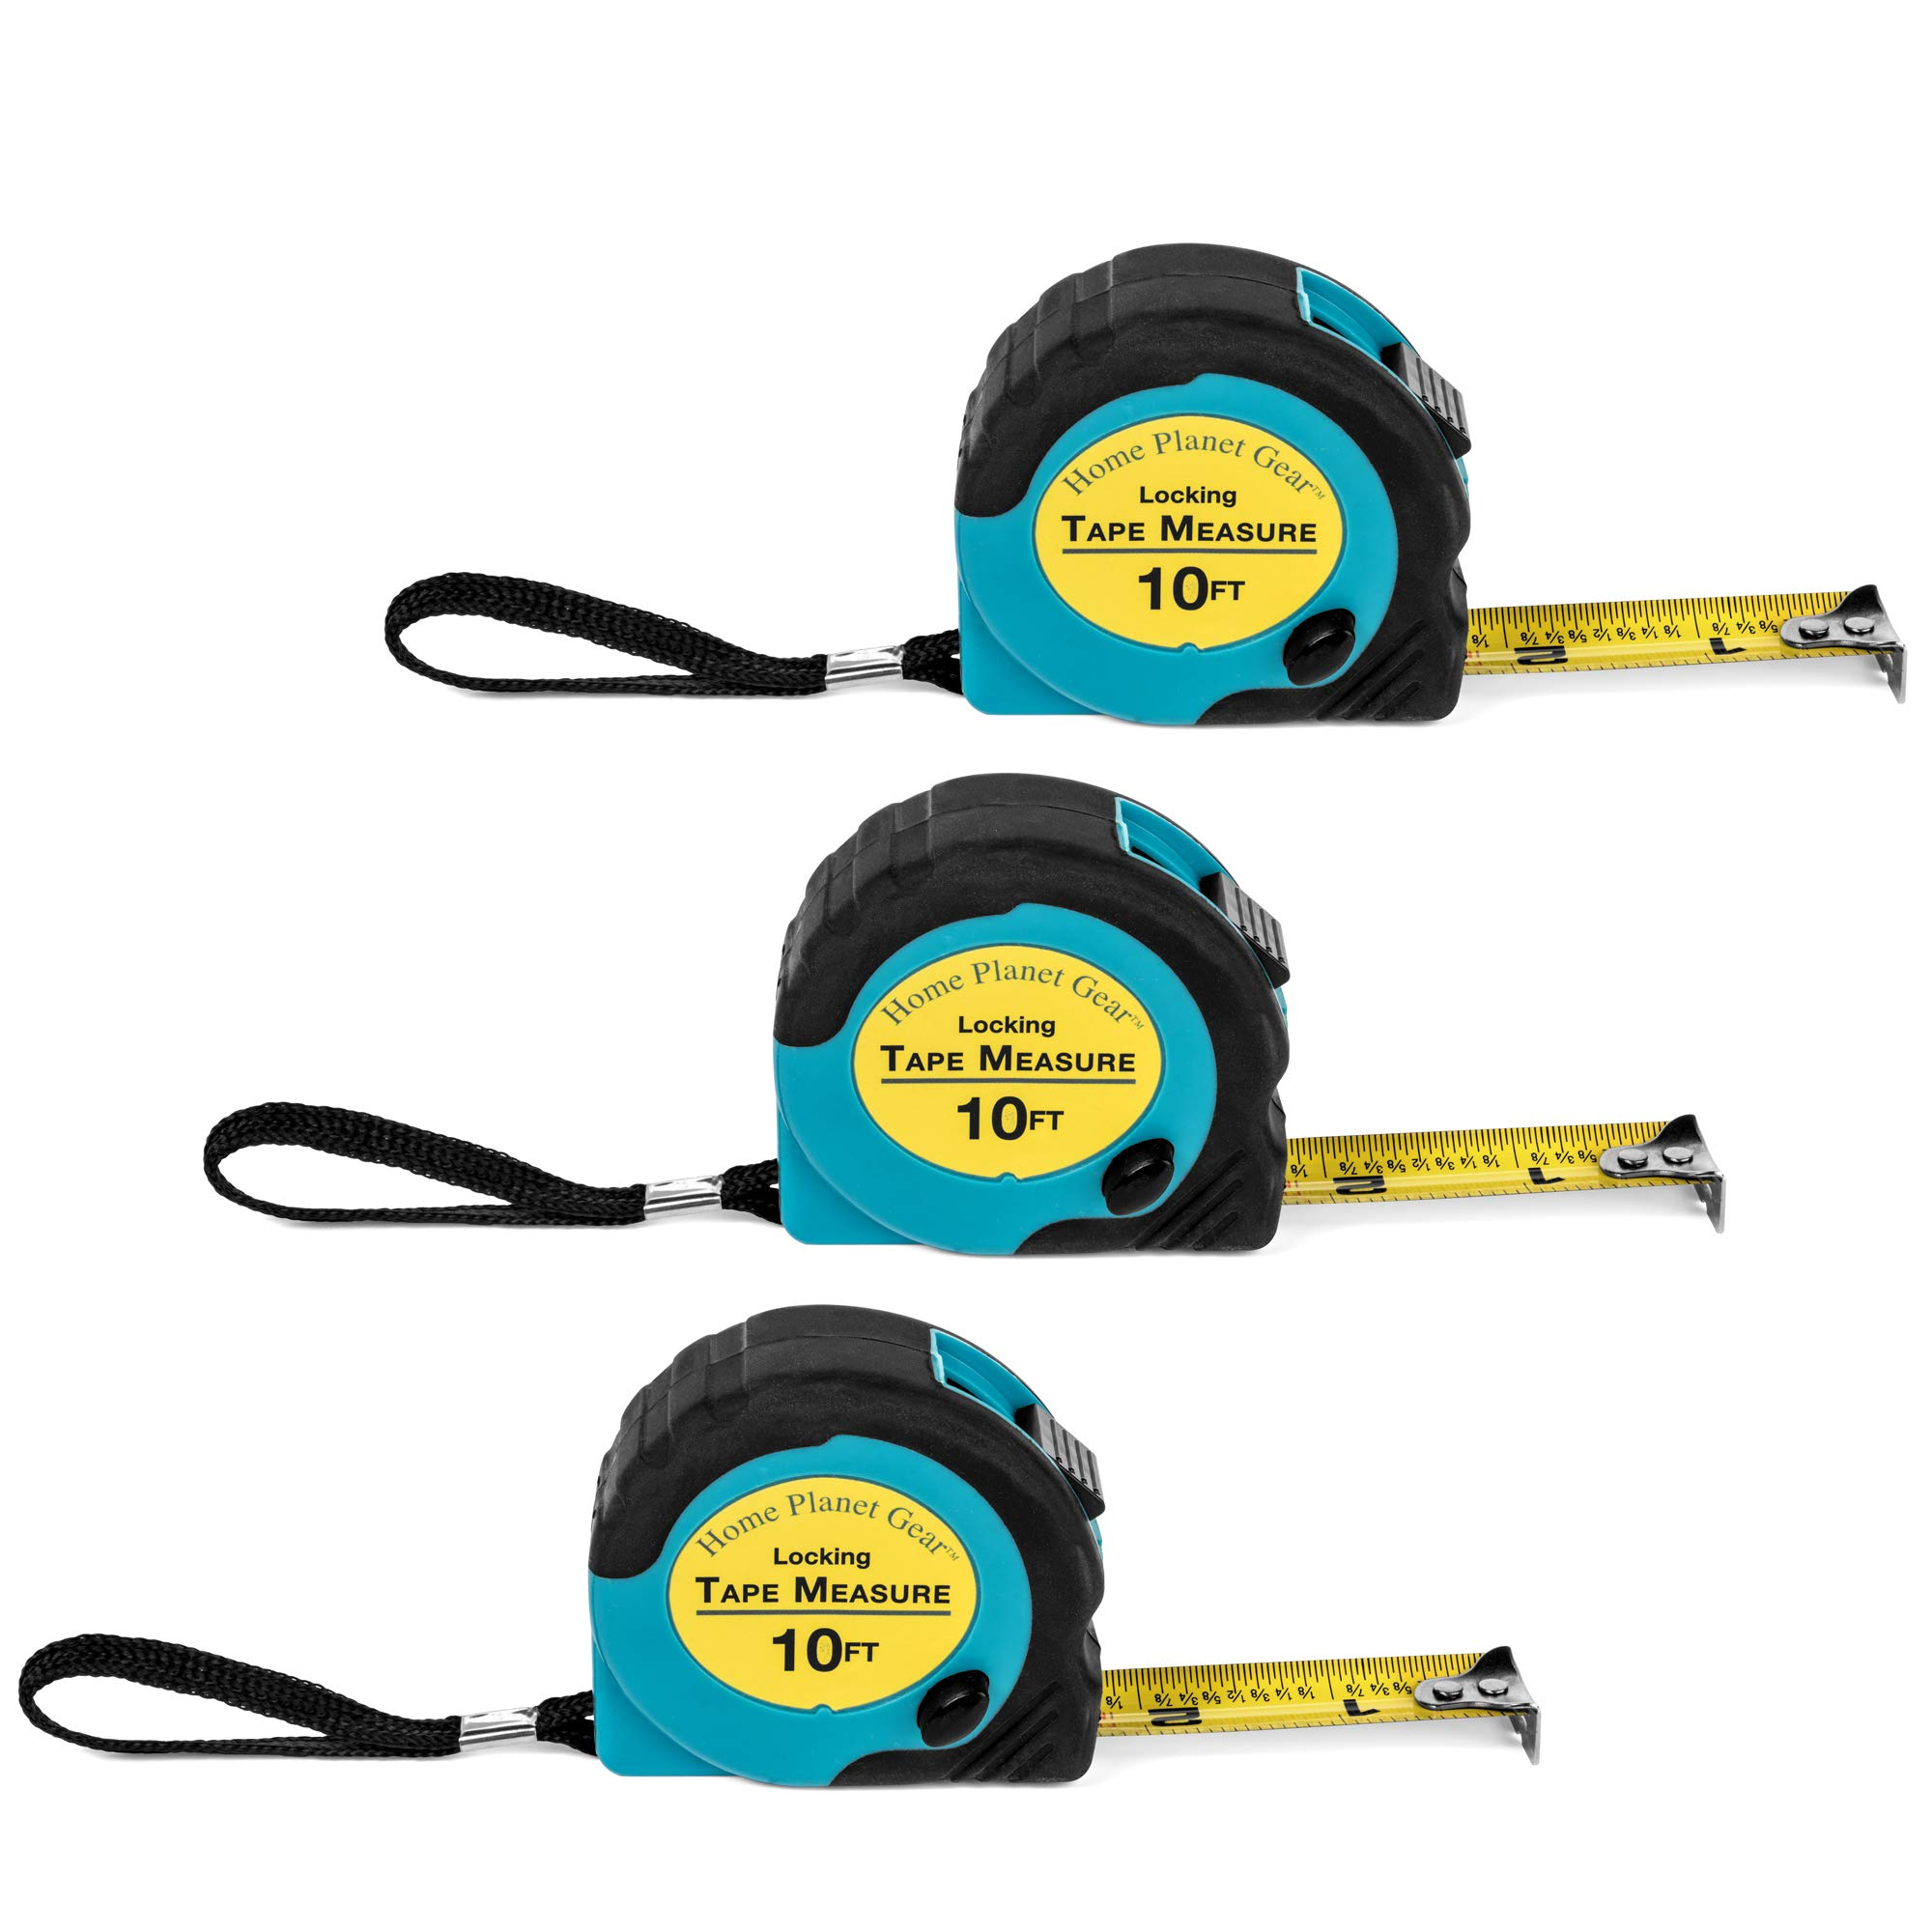 Where's My Tape Measure? - 3 Pack of 10 ft, Locking, Retractable Auto-Wind Measuring Tapes with Fractions. Accurate, Easy to Read & EASY TO FIND! by Home Planet Gear